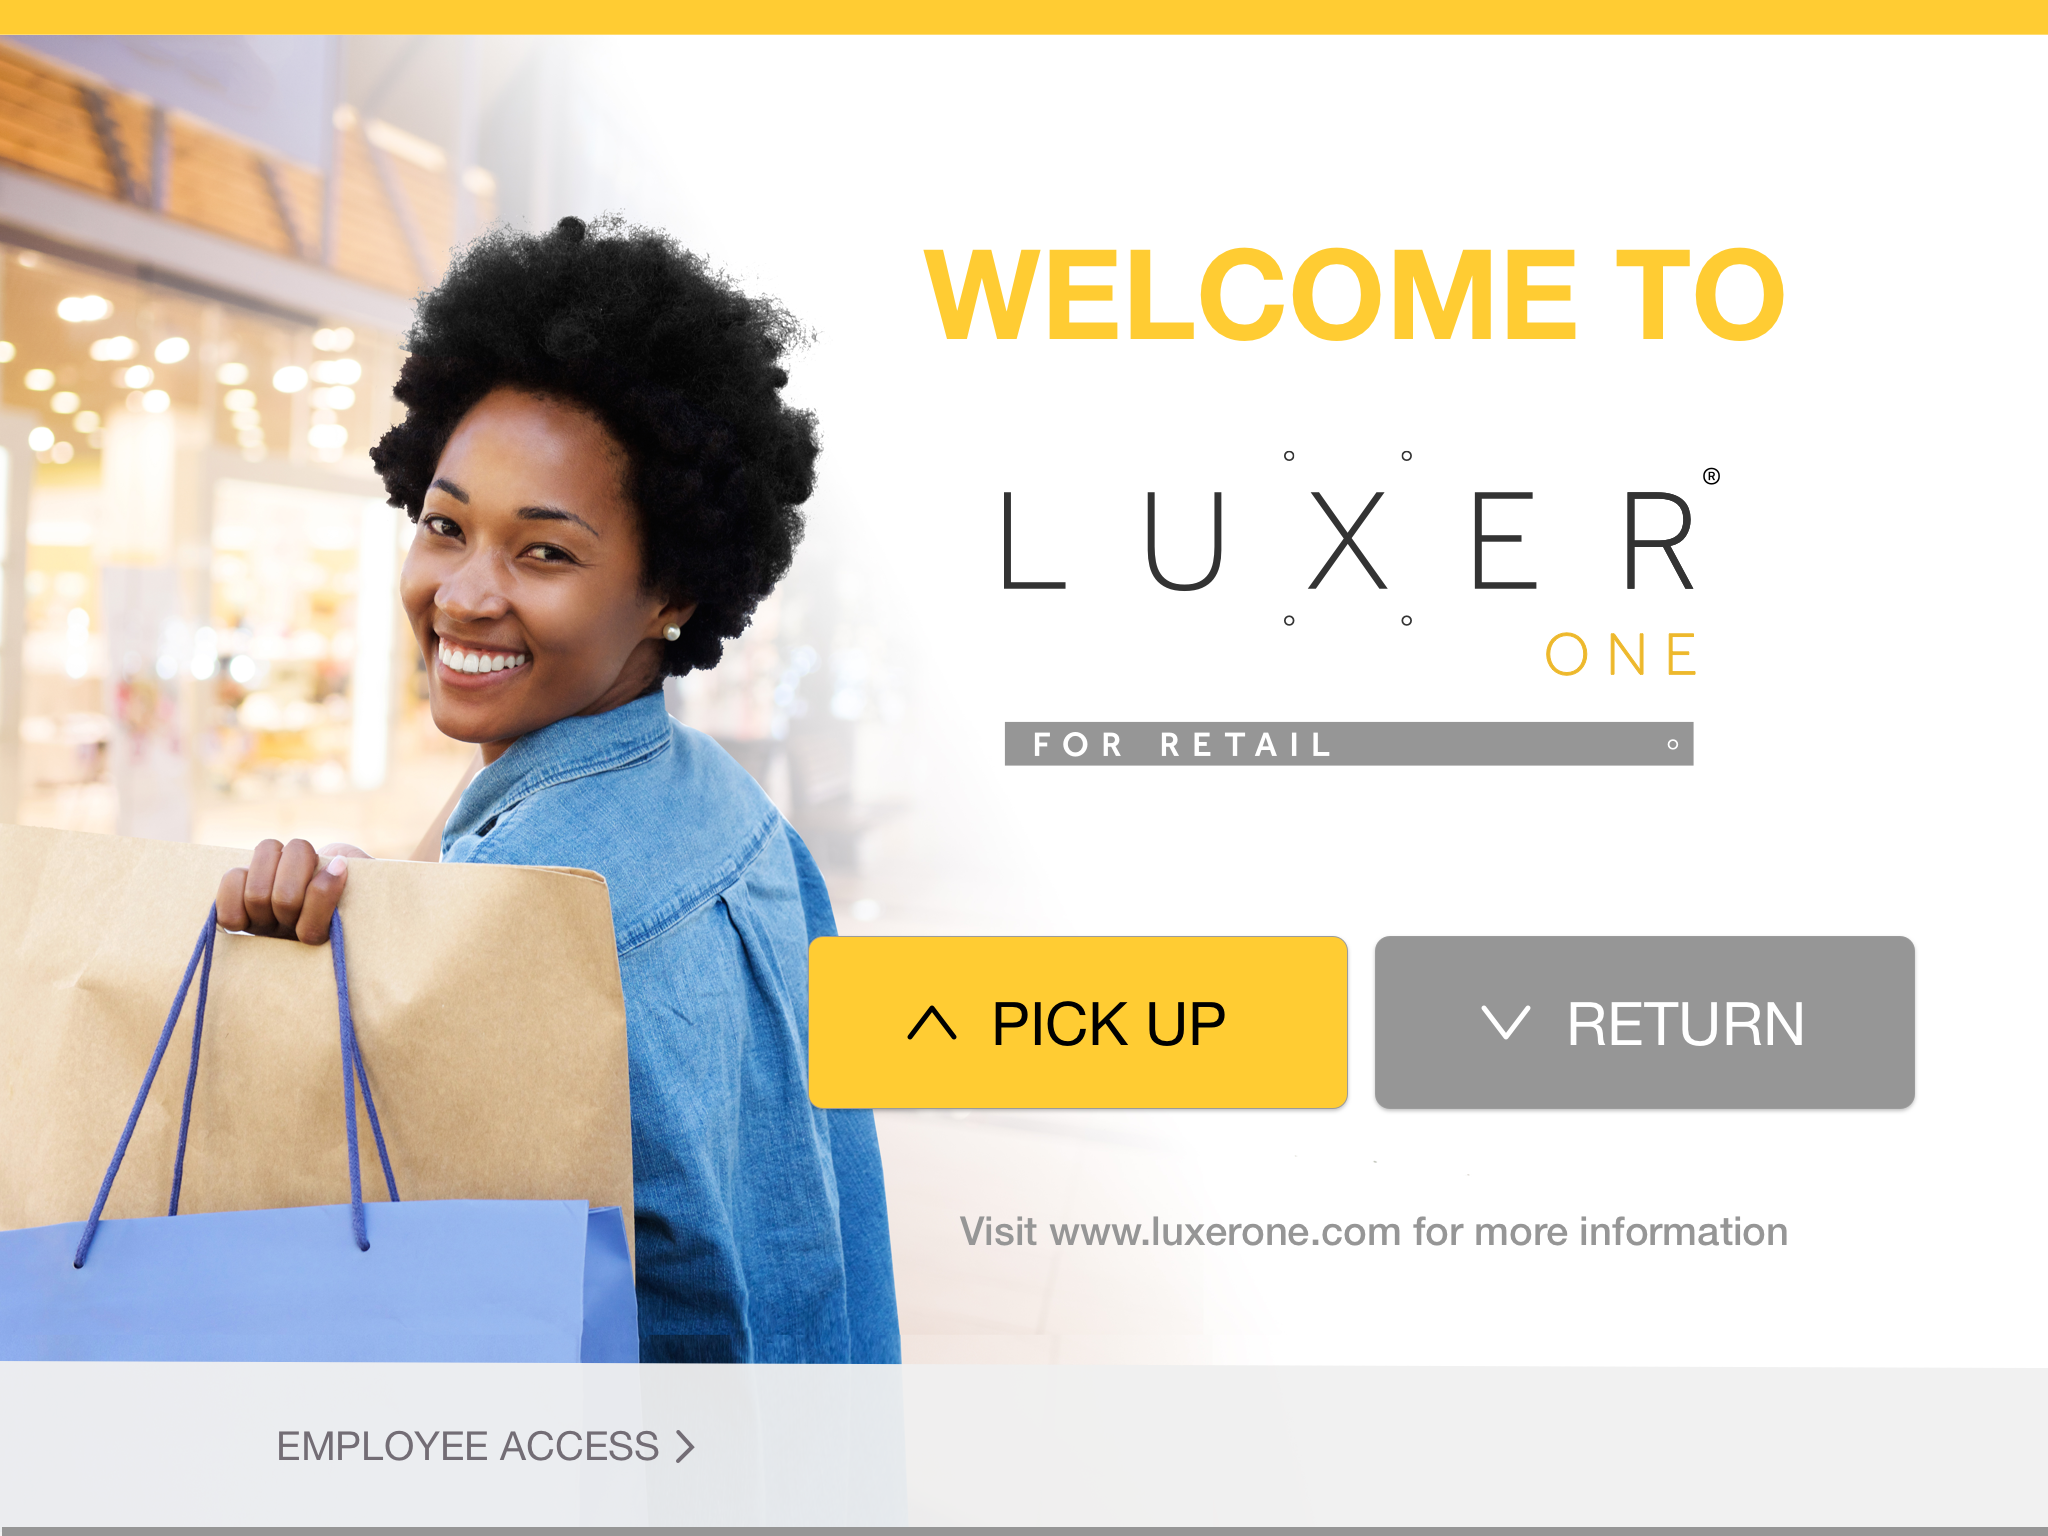 Luxer One for Retail Welcome Screen Copy@2x